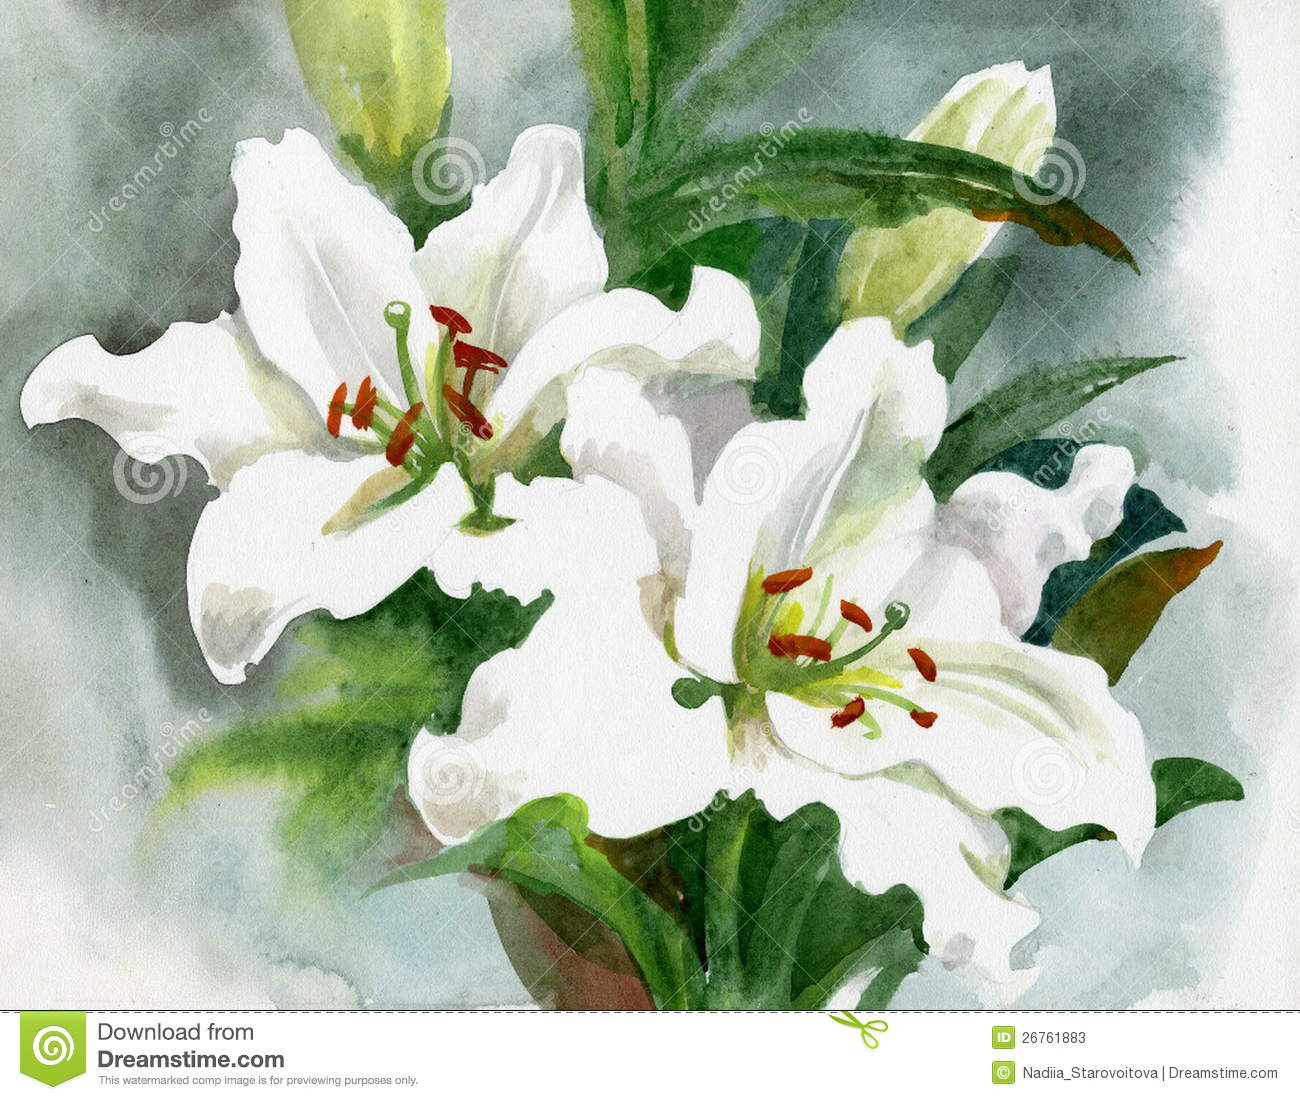 Beautiful white lily flowers stock illustration illustration of beautiful white lily flowers izmirmasajfo